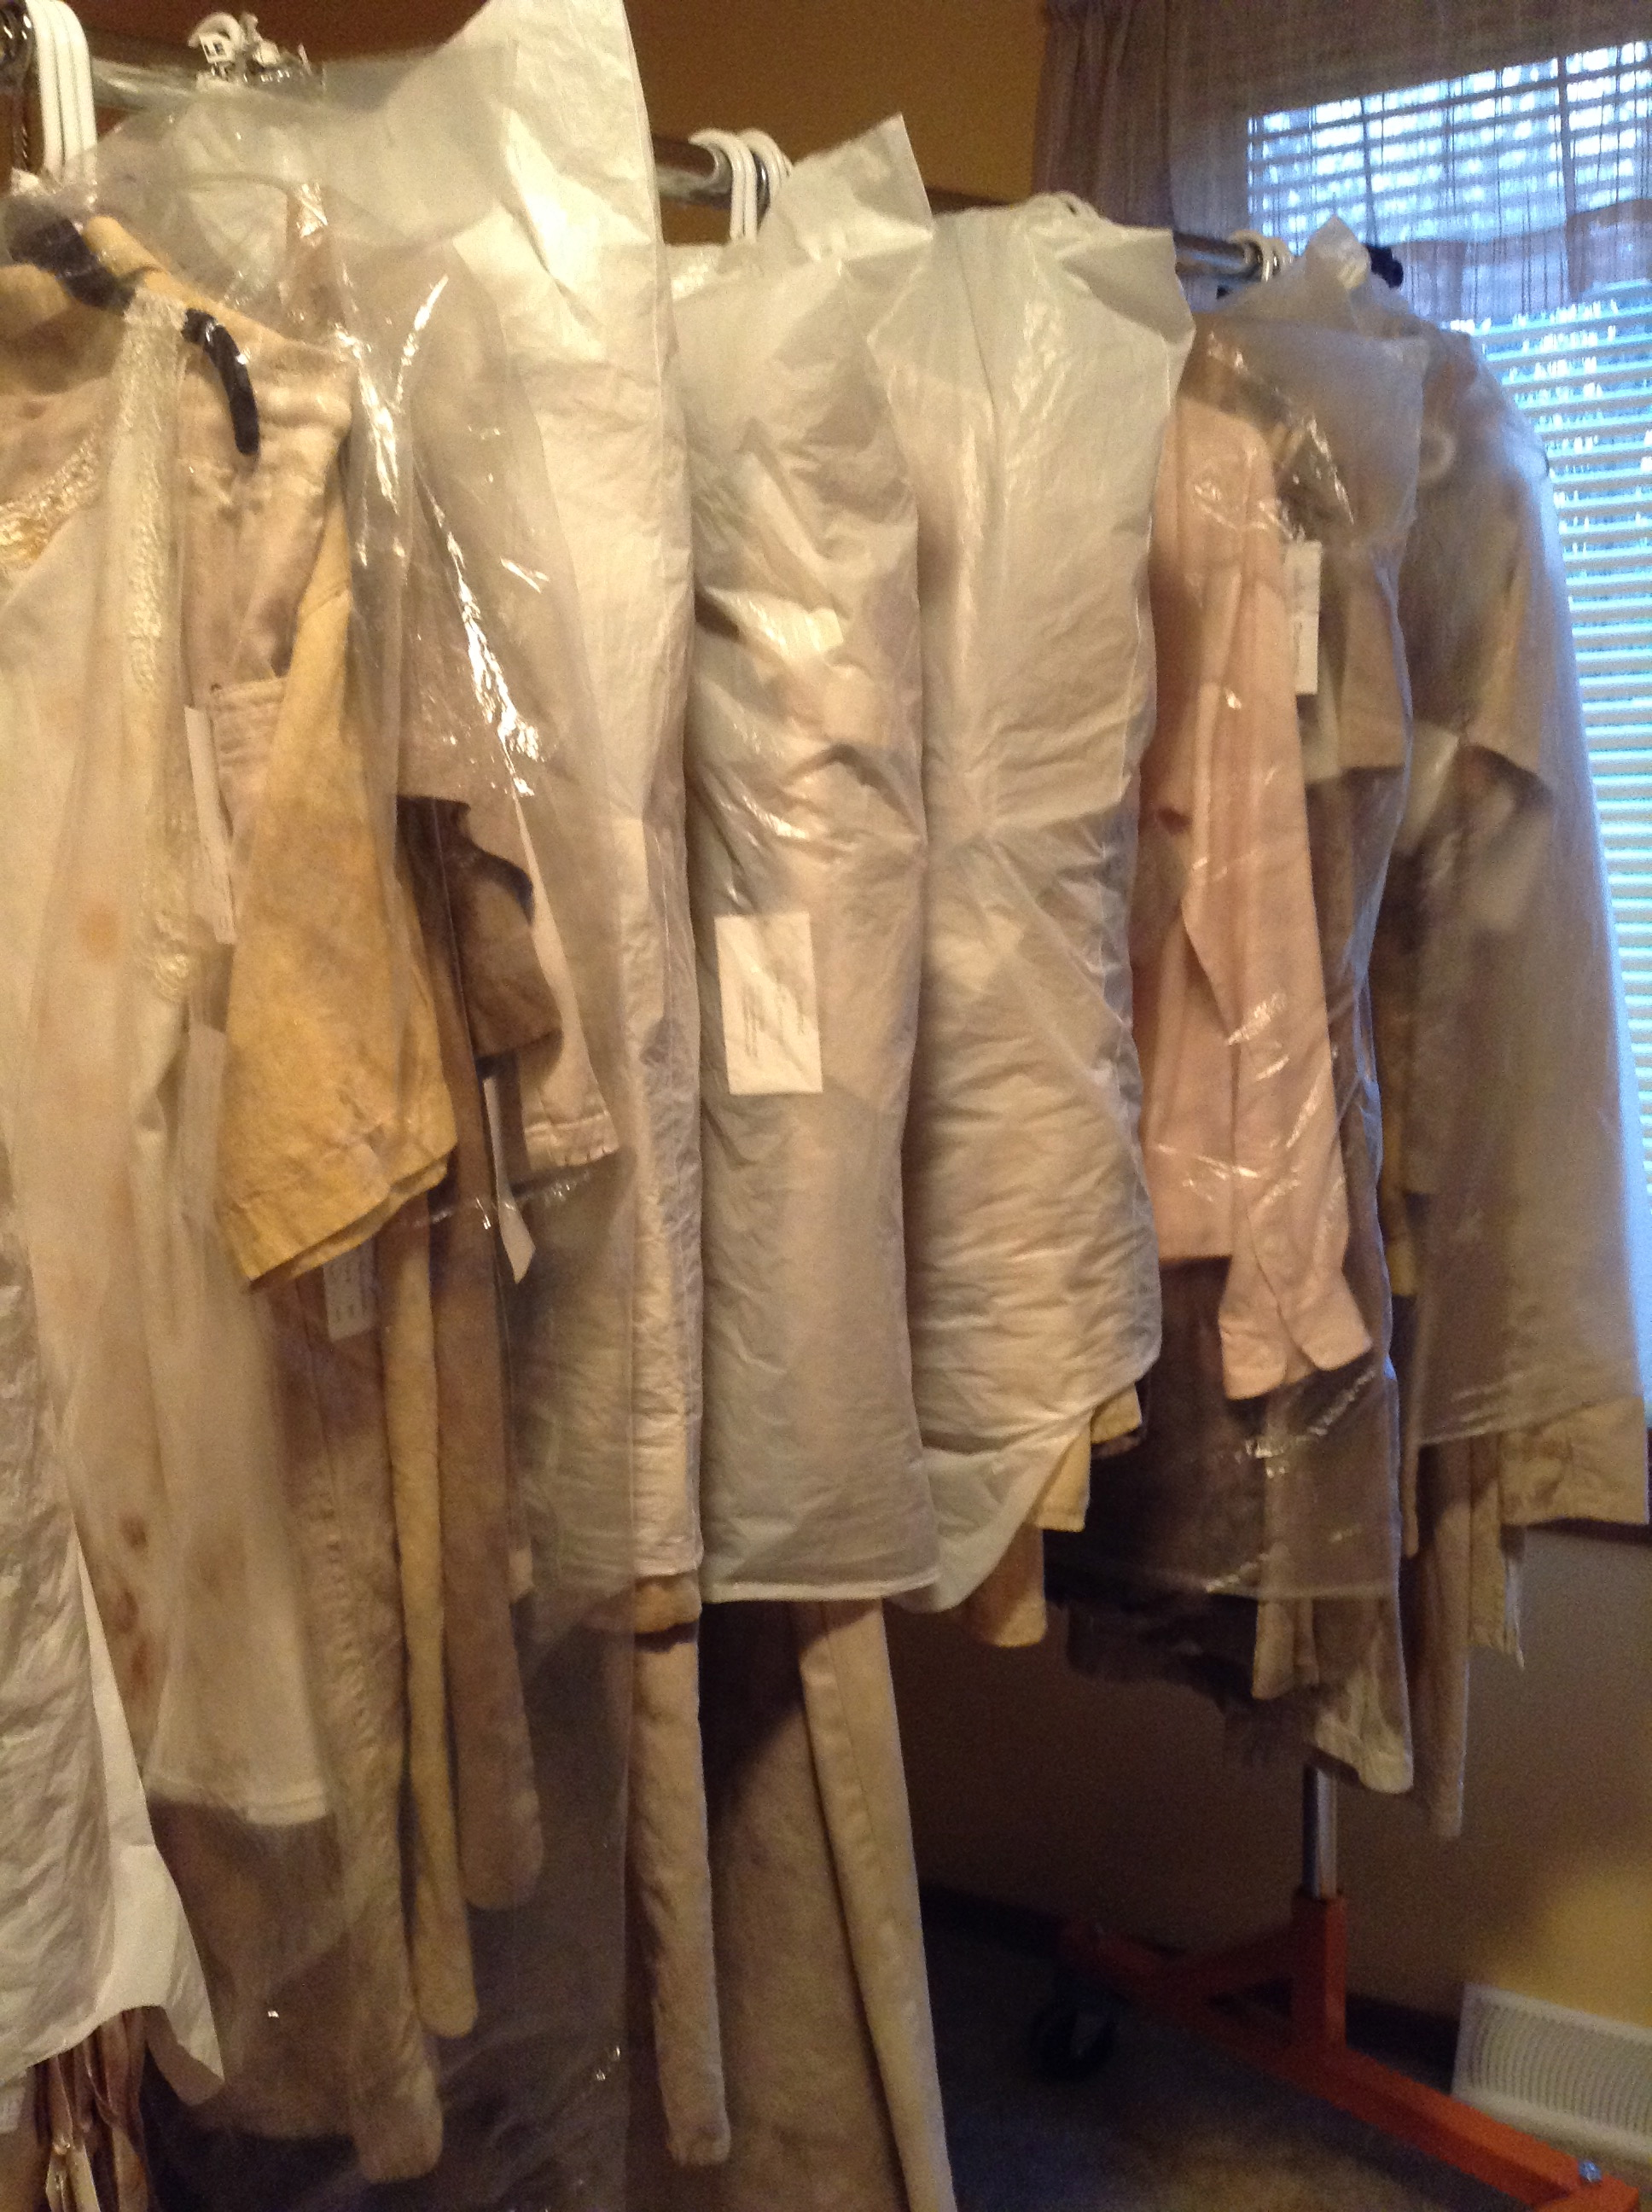 Rack of naturally dyed clothing ready for Wildfloer Show.